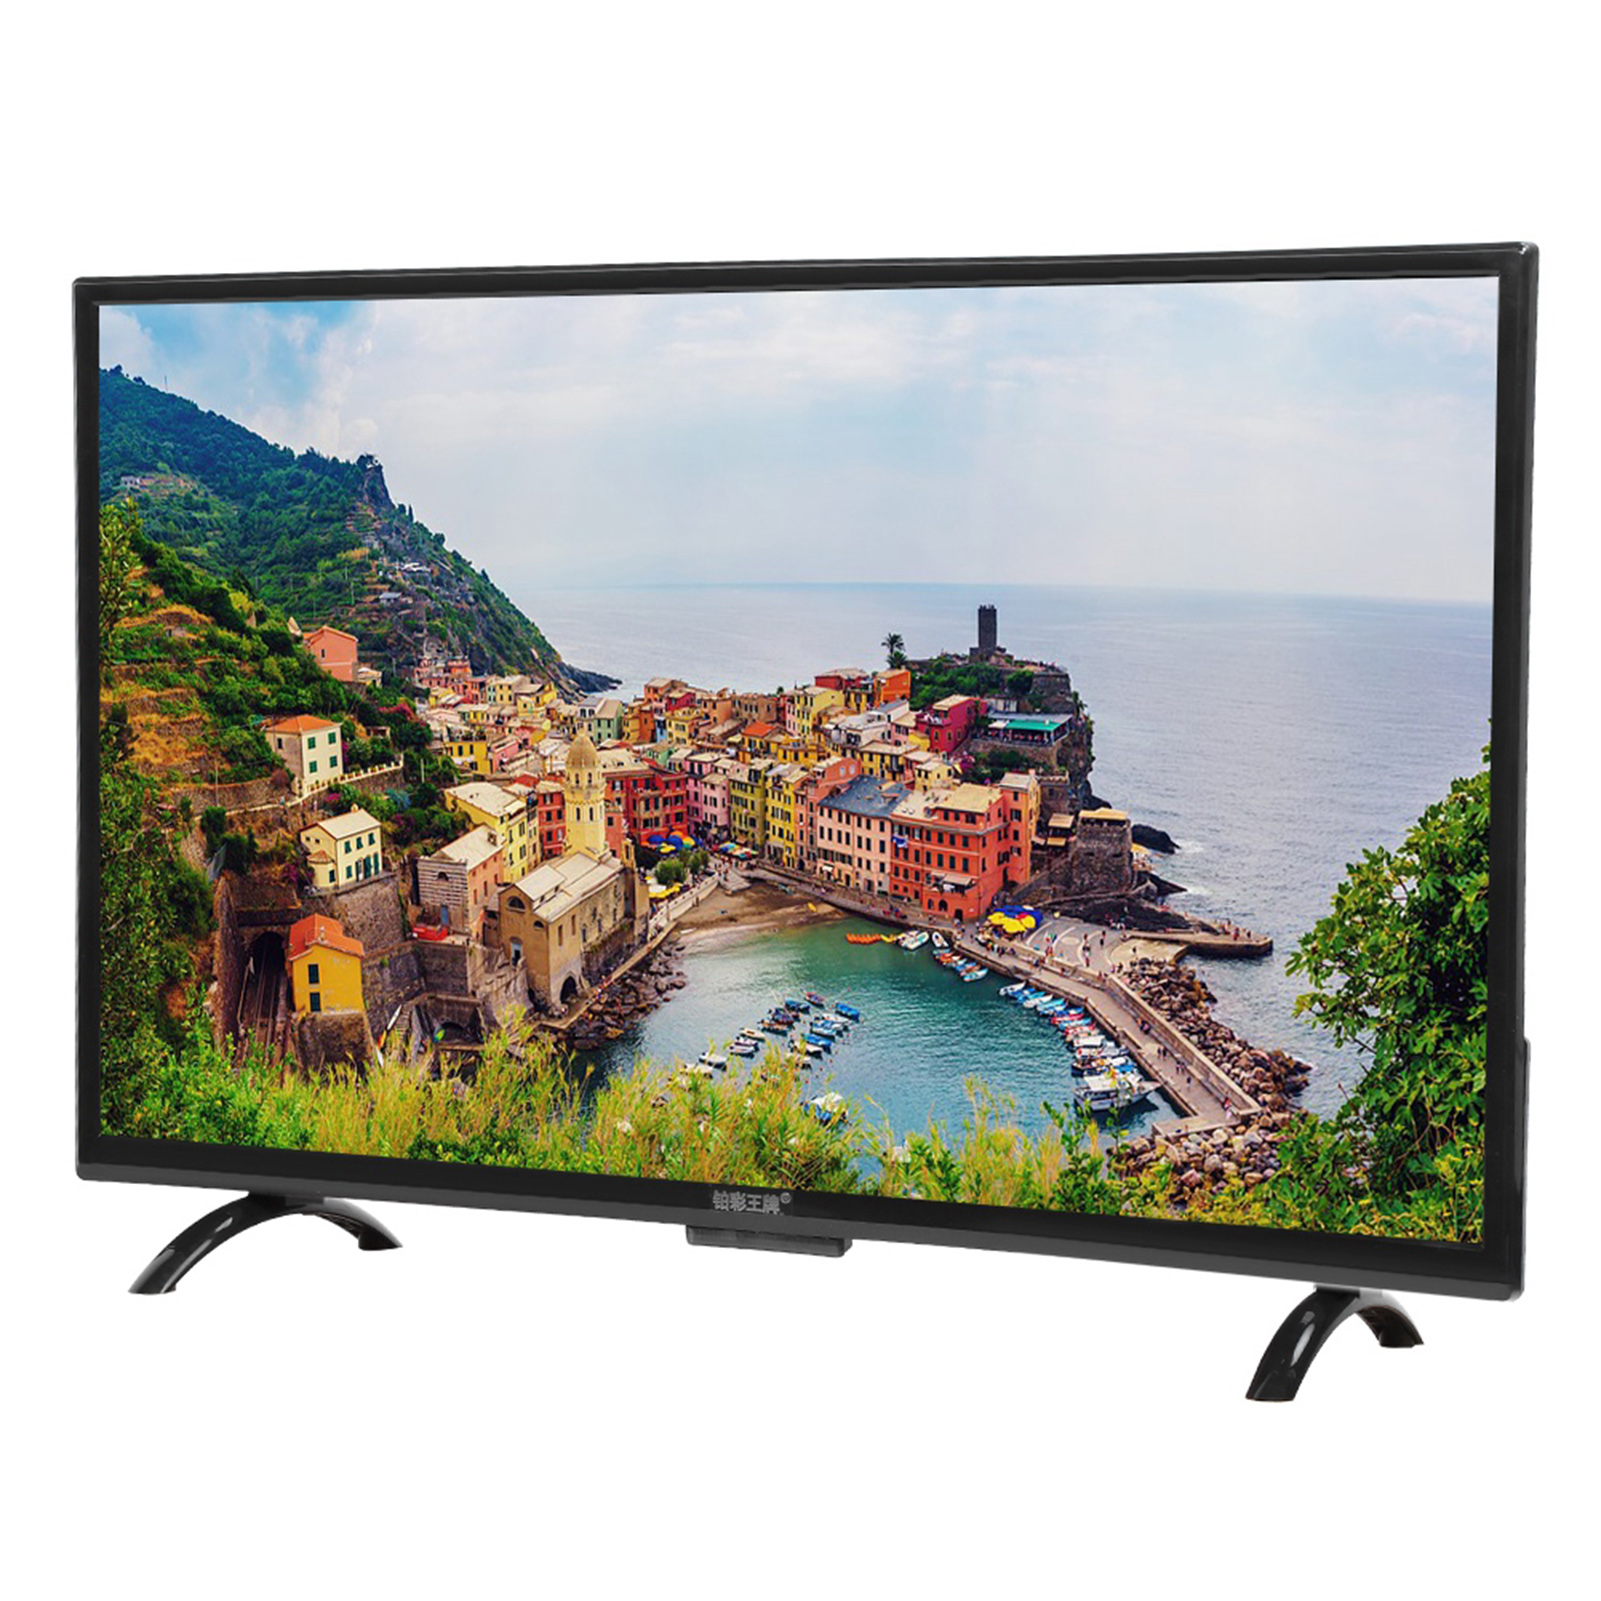 32-034-43-034-55-034-4K-HDR-Smart-TV-1080P-HD-WiFi-USB-HDMI-3000R-Television-for-Android miniature 15